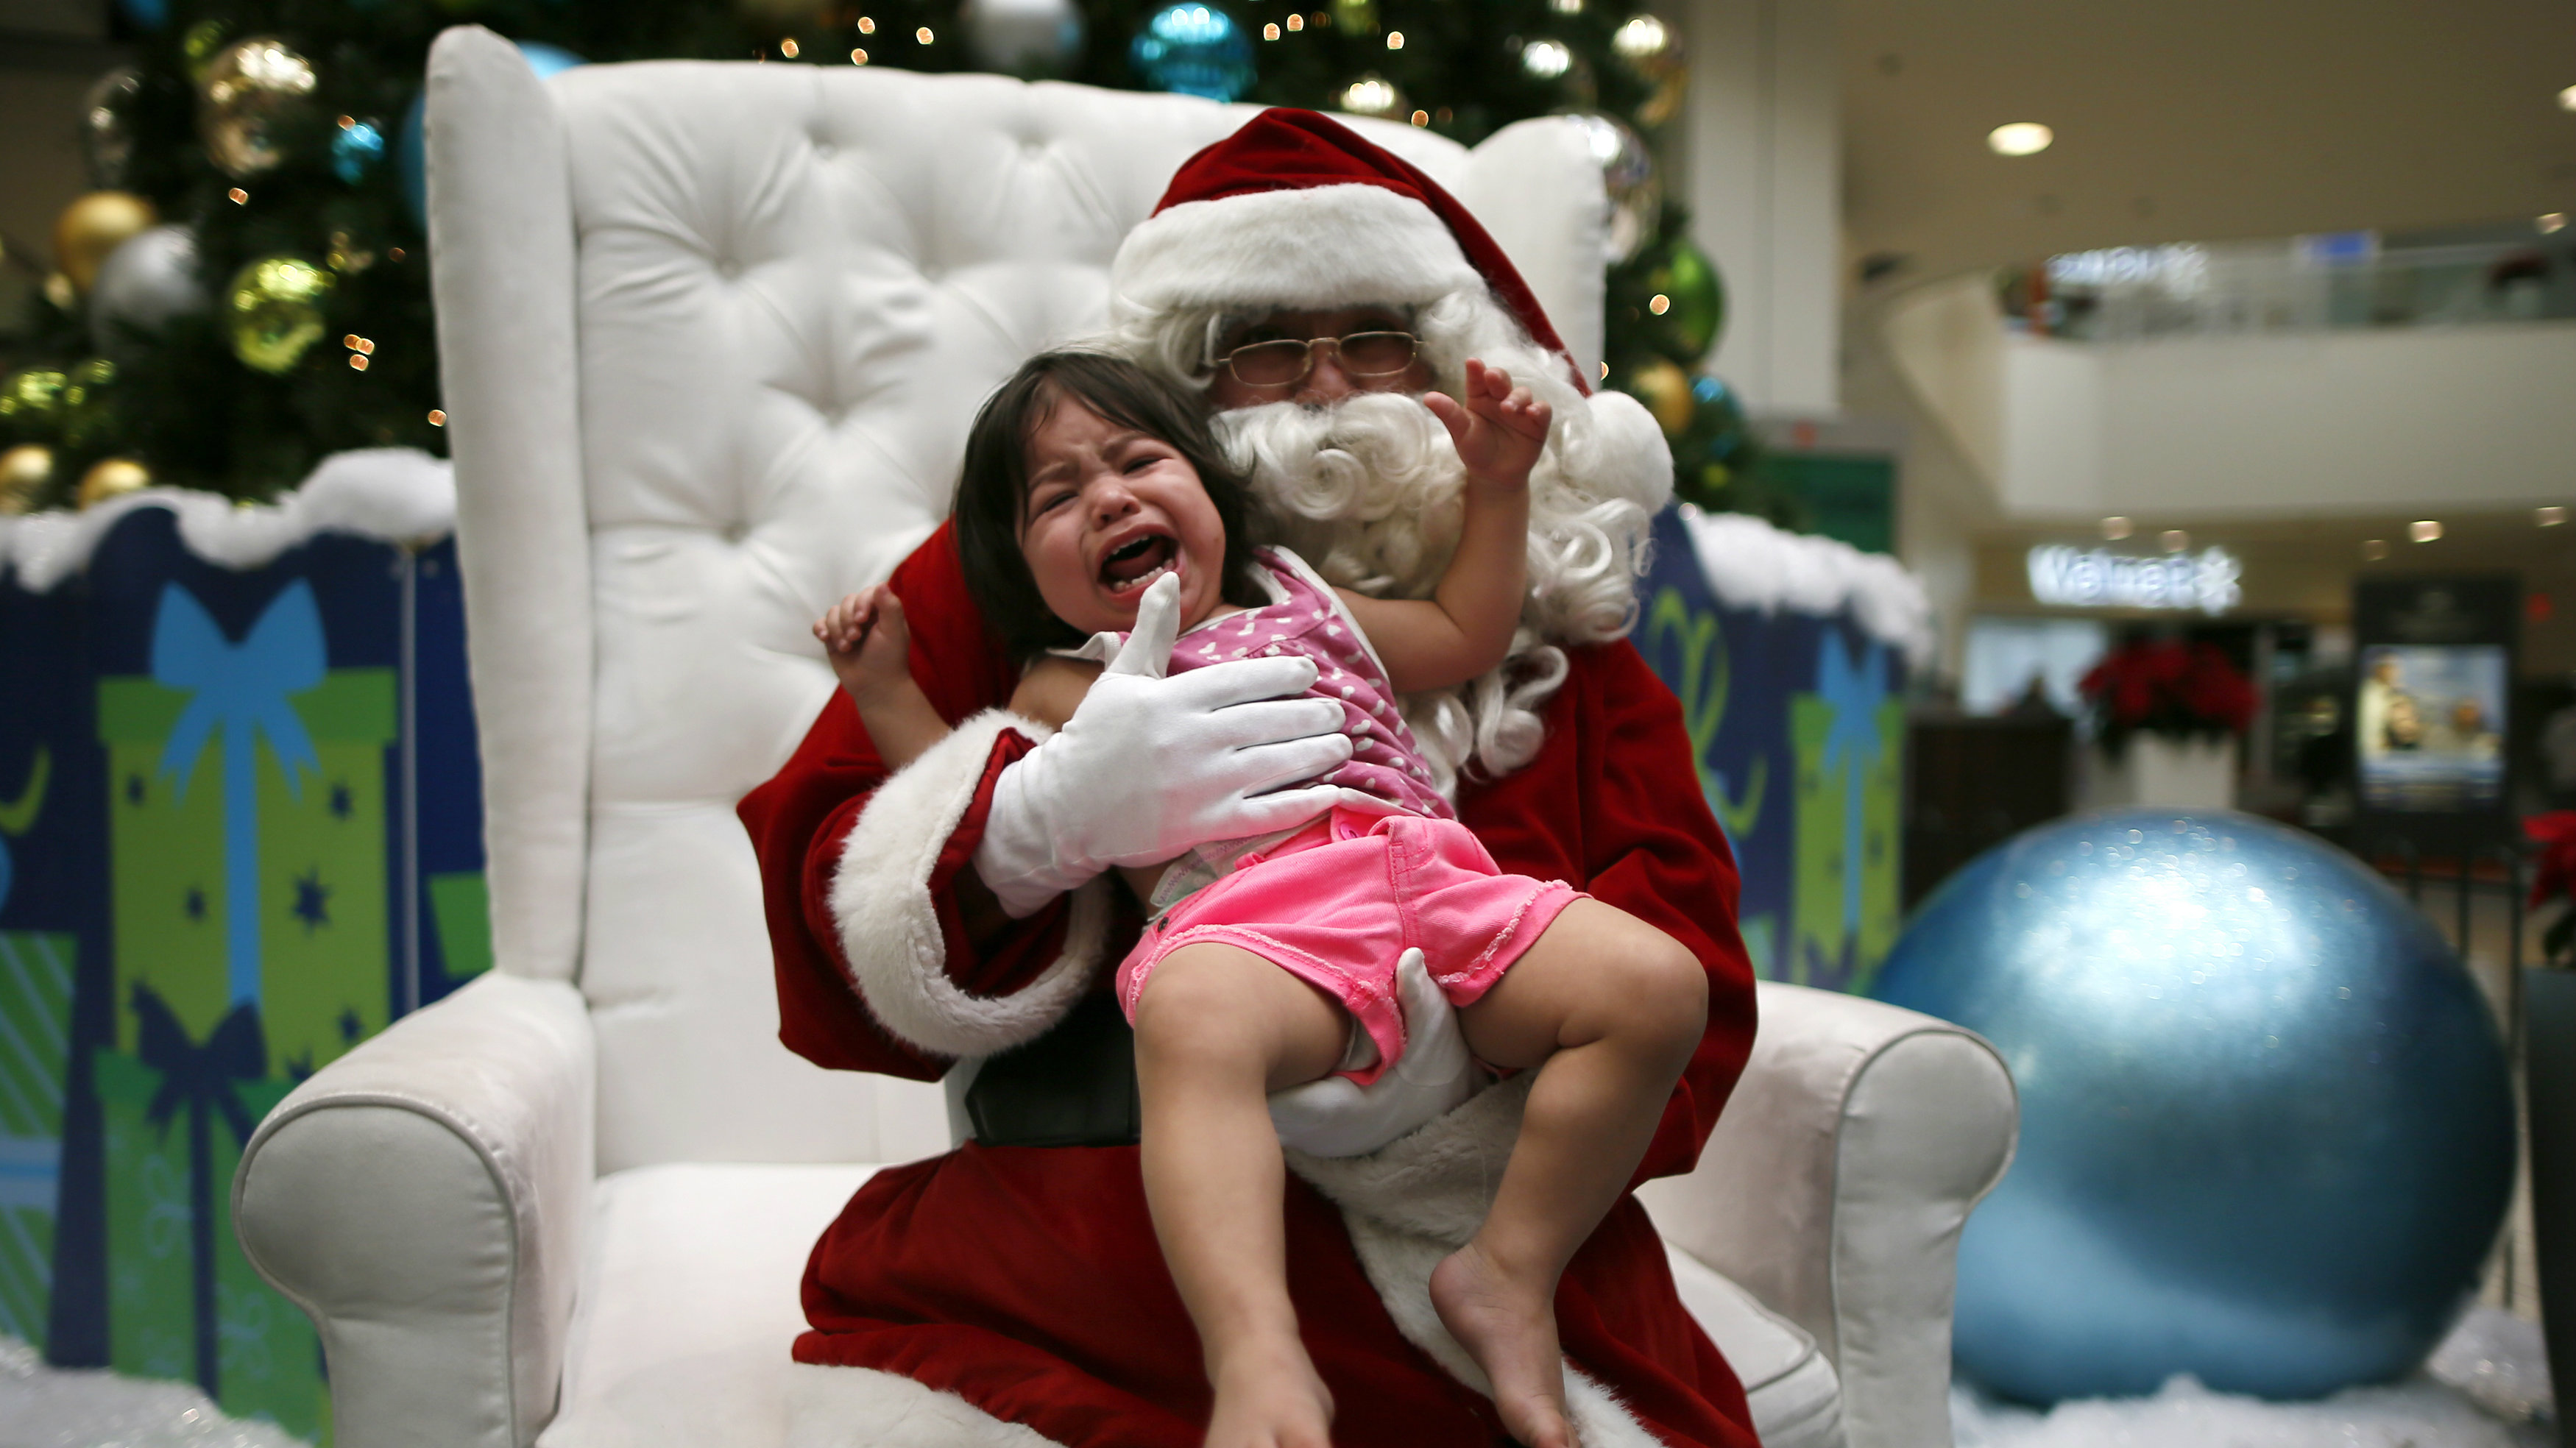 Latino Santa Claus Mario Vasquez, who is from Honduras, poses with one-year-old Hailey Chinchilla at Baldwin Hills Crenshaw Plaza mall in Los Angeles, California, December 16, 2013. A New Mexico teacher who told an African American student that Santa Claus was white has been put on paid administrative leave, an official said on Monday. REUTERS/Lucy Nicholson